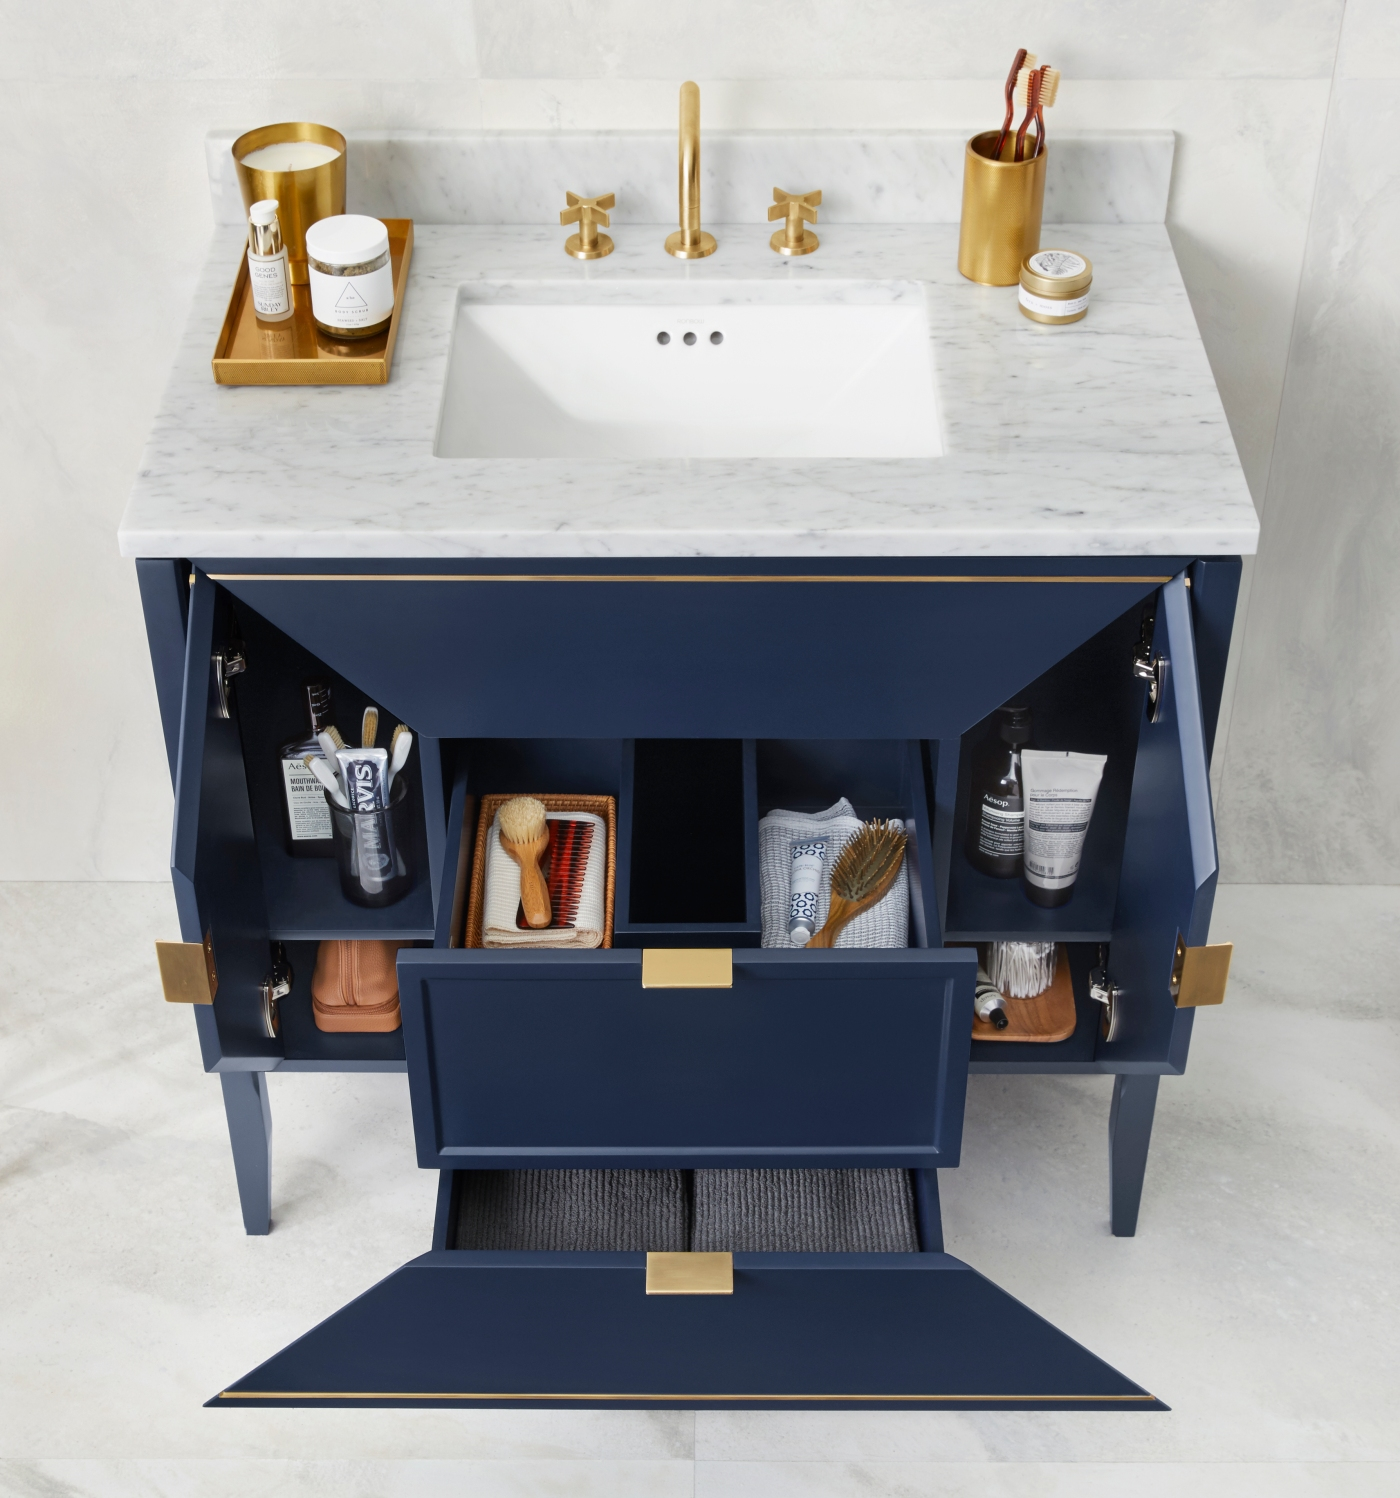 Bathroom Vanities: A Reflection of Your Personal Style – PDI Kitchen ...